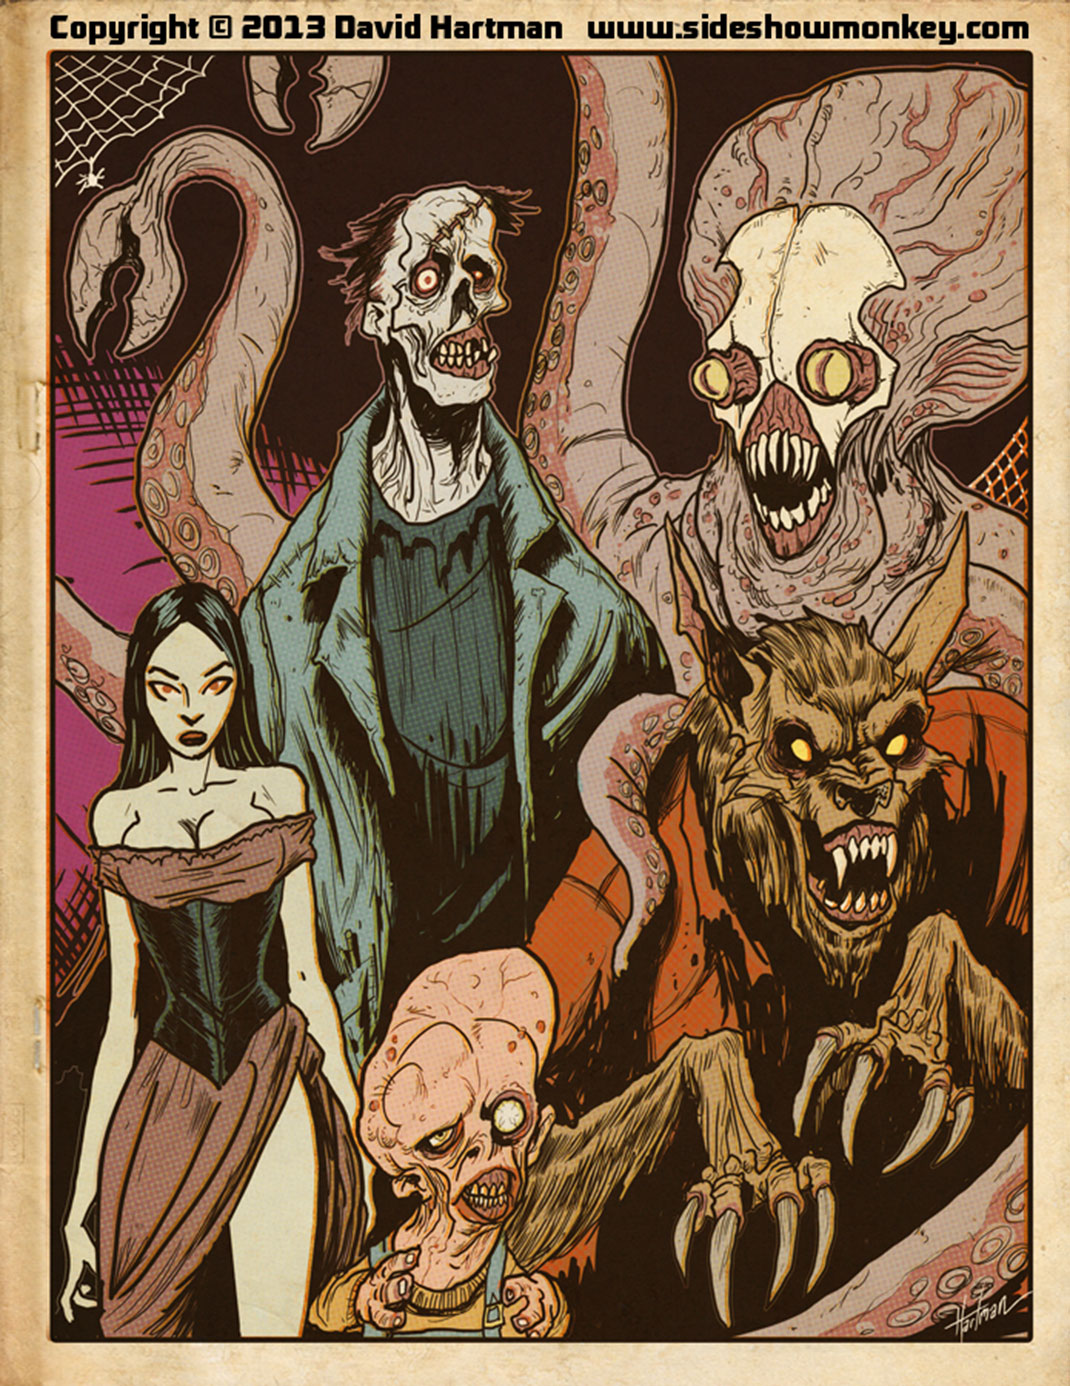 monster_page_by_hartman_by_sideshowmonkey-d6uvtrw